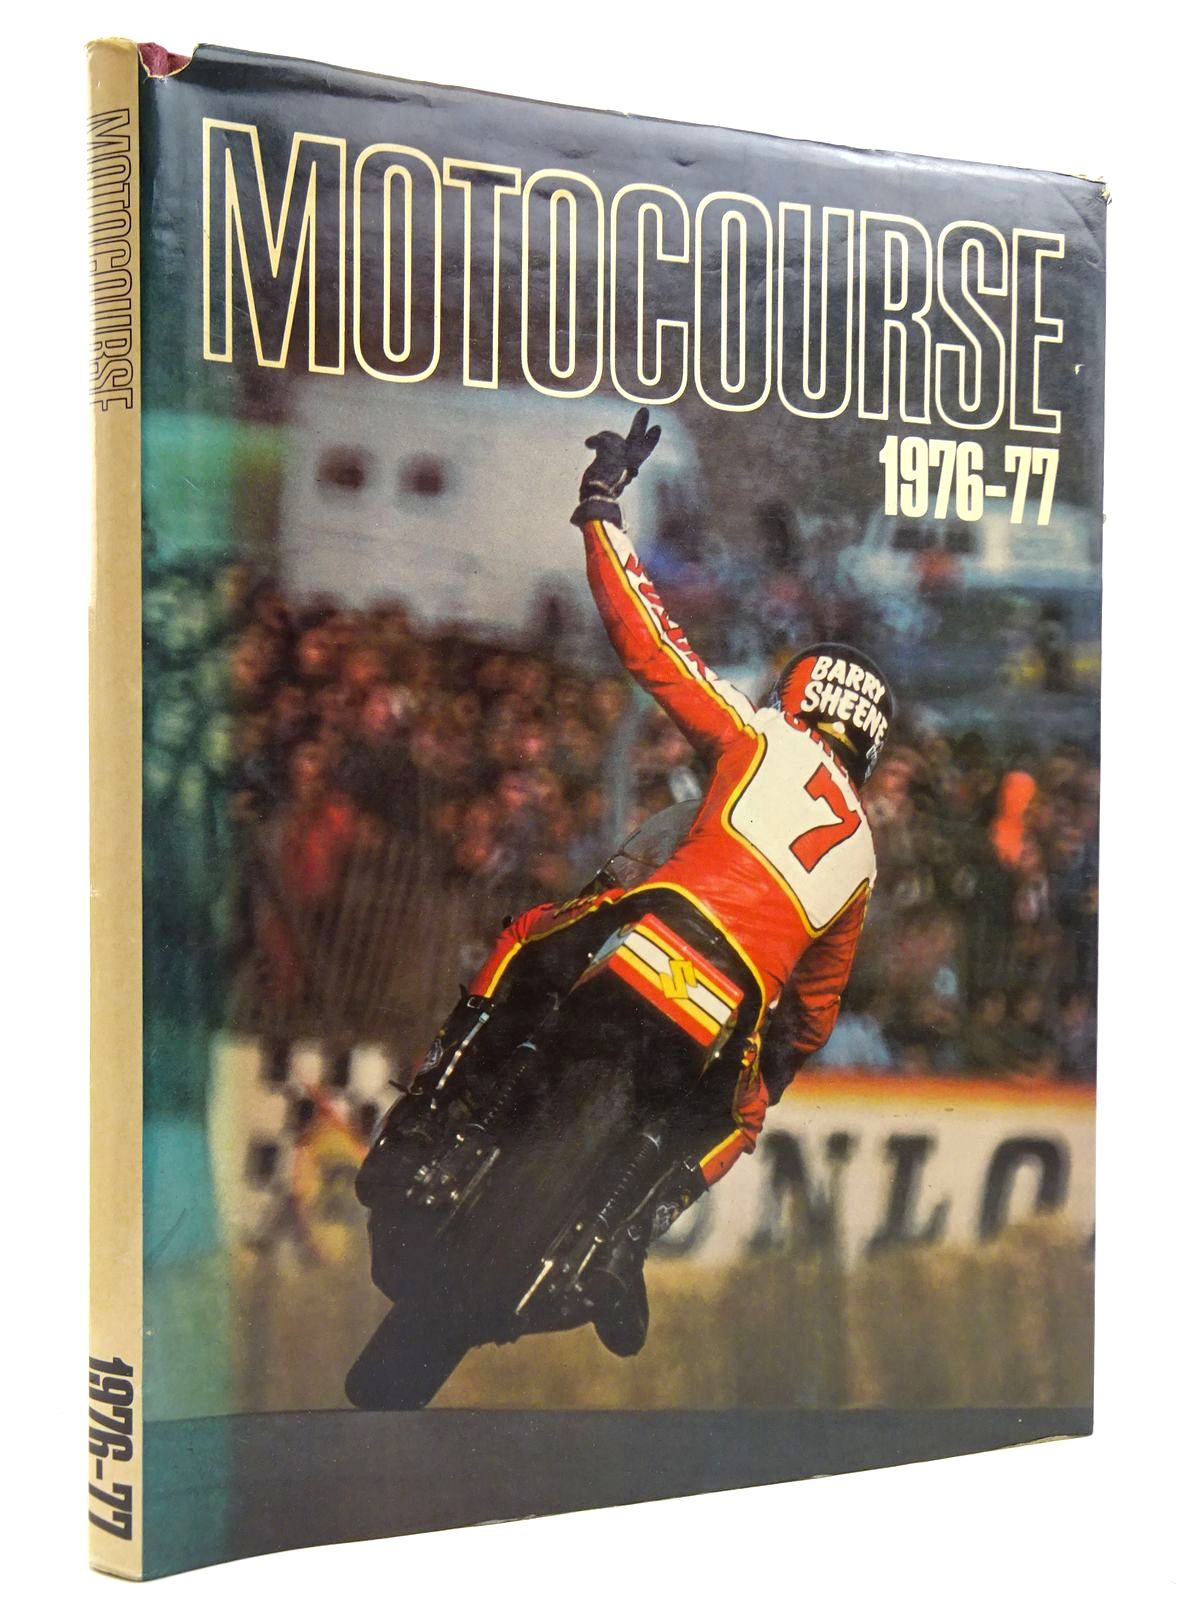 Photo of MOTOCOURSE 1976-77 published by Hazleton Publishing (STOCK CODE: 2131231)  for sale by Stella & Rose's Books